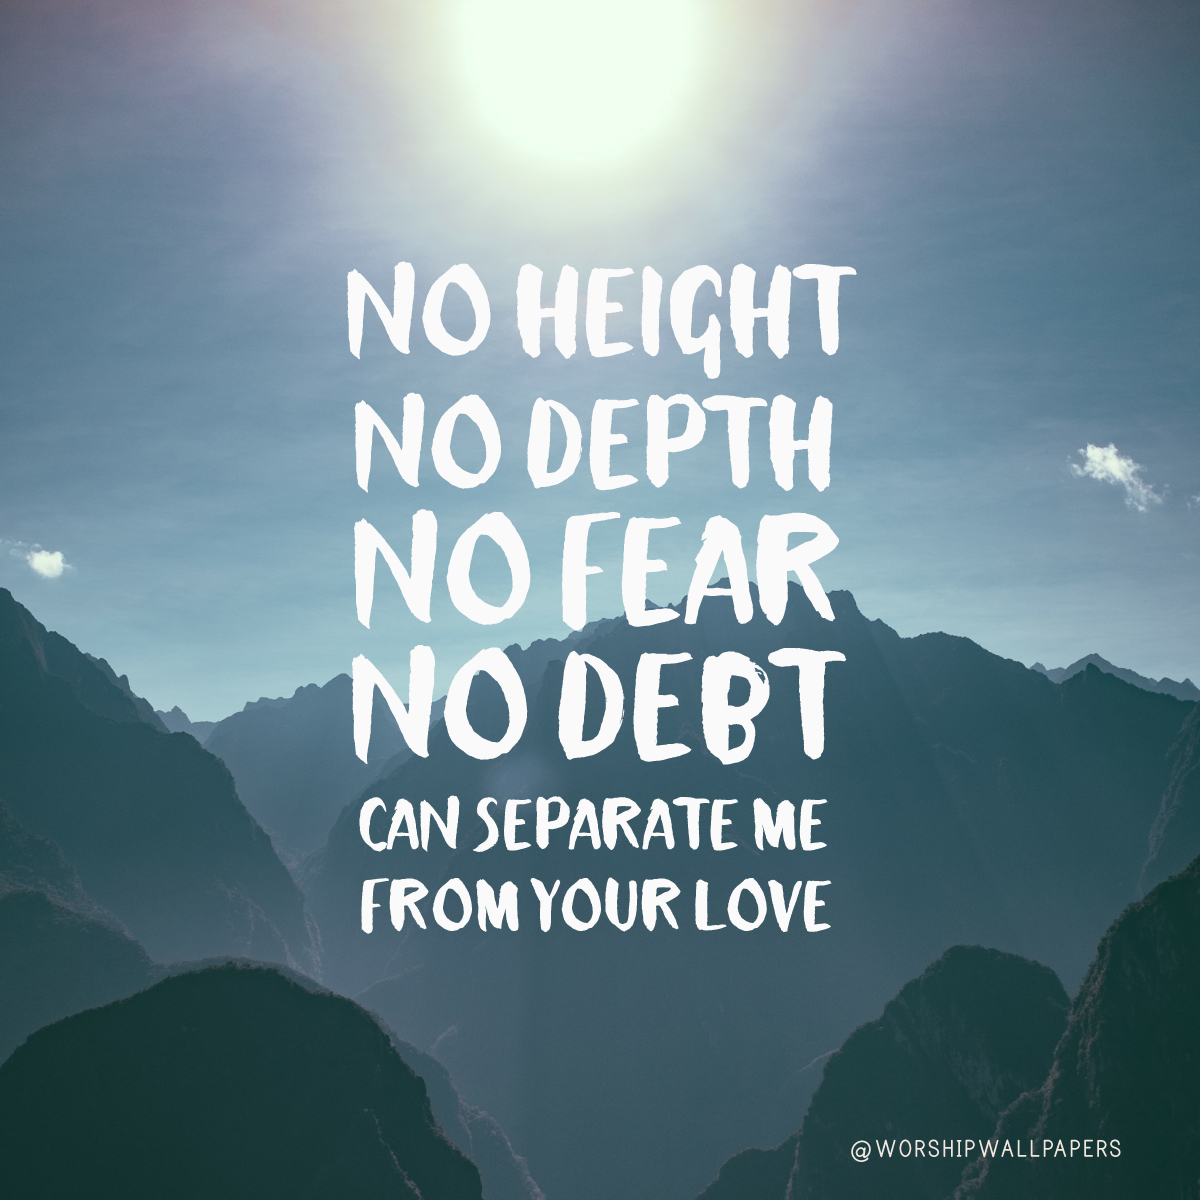 unstoppable love jesus culture worship wallpapers